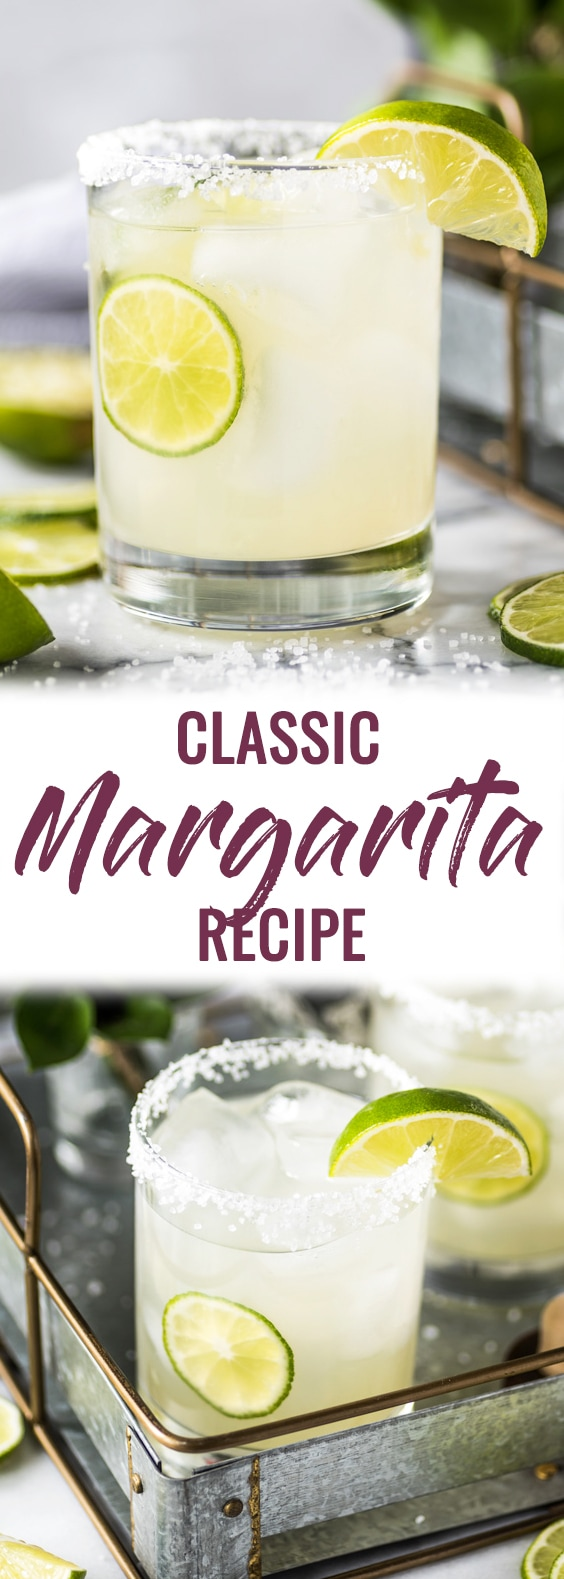 This Classic Margarita Recipe is perfectly balanced with tequila, triple sec and lime juice for a crisp and refreshing cocktail. No margarita mix required!